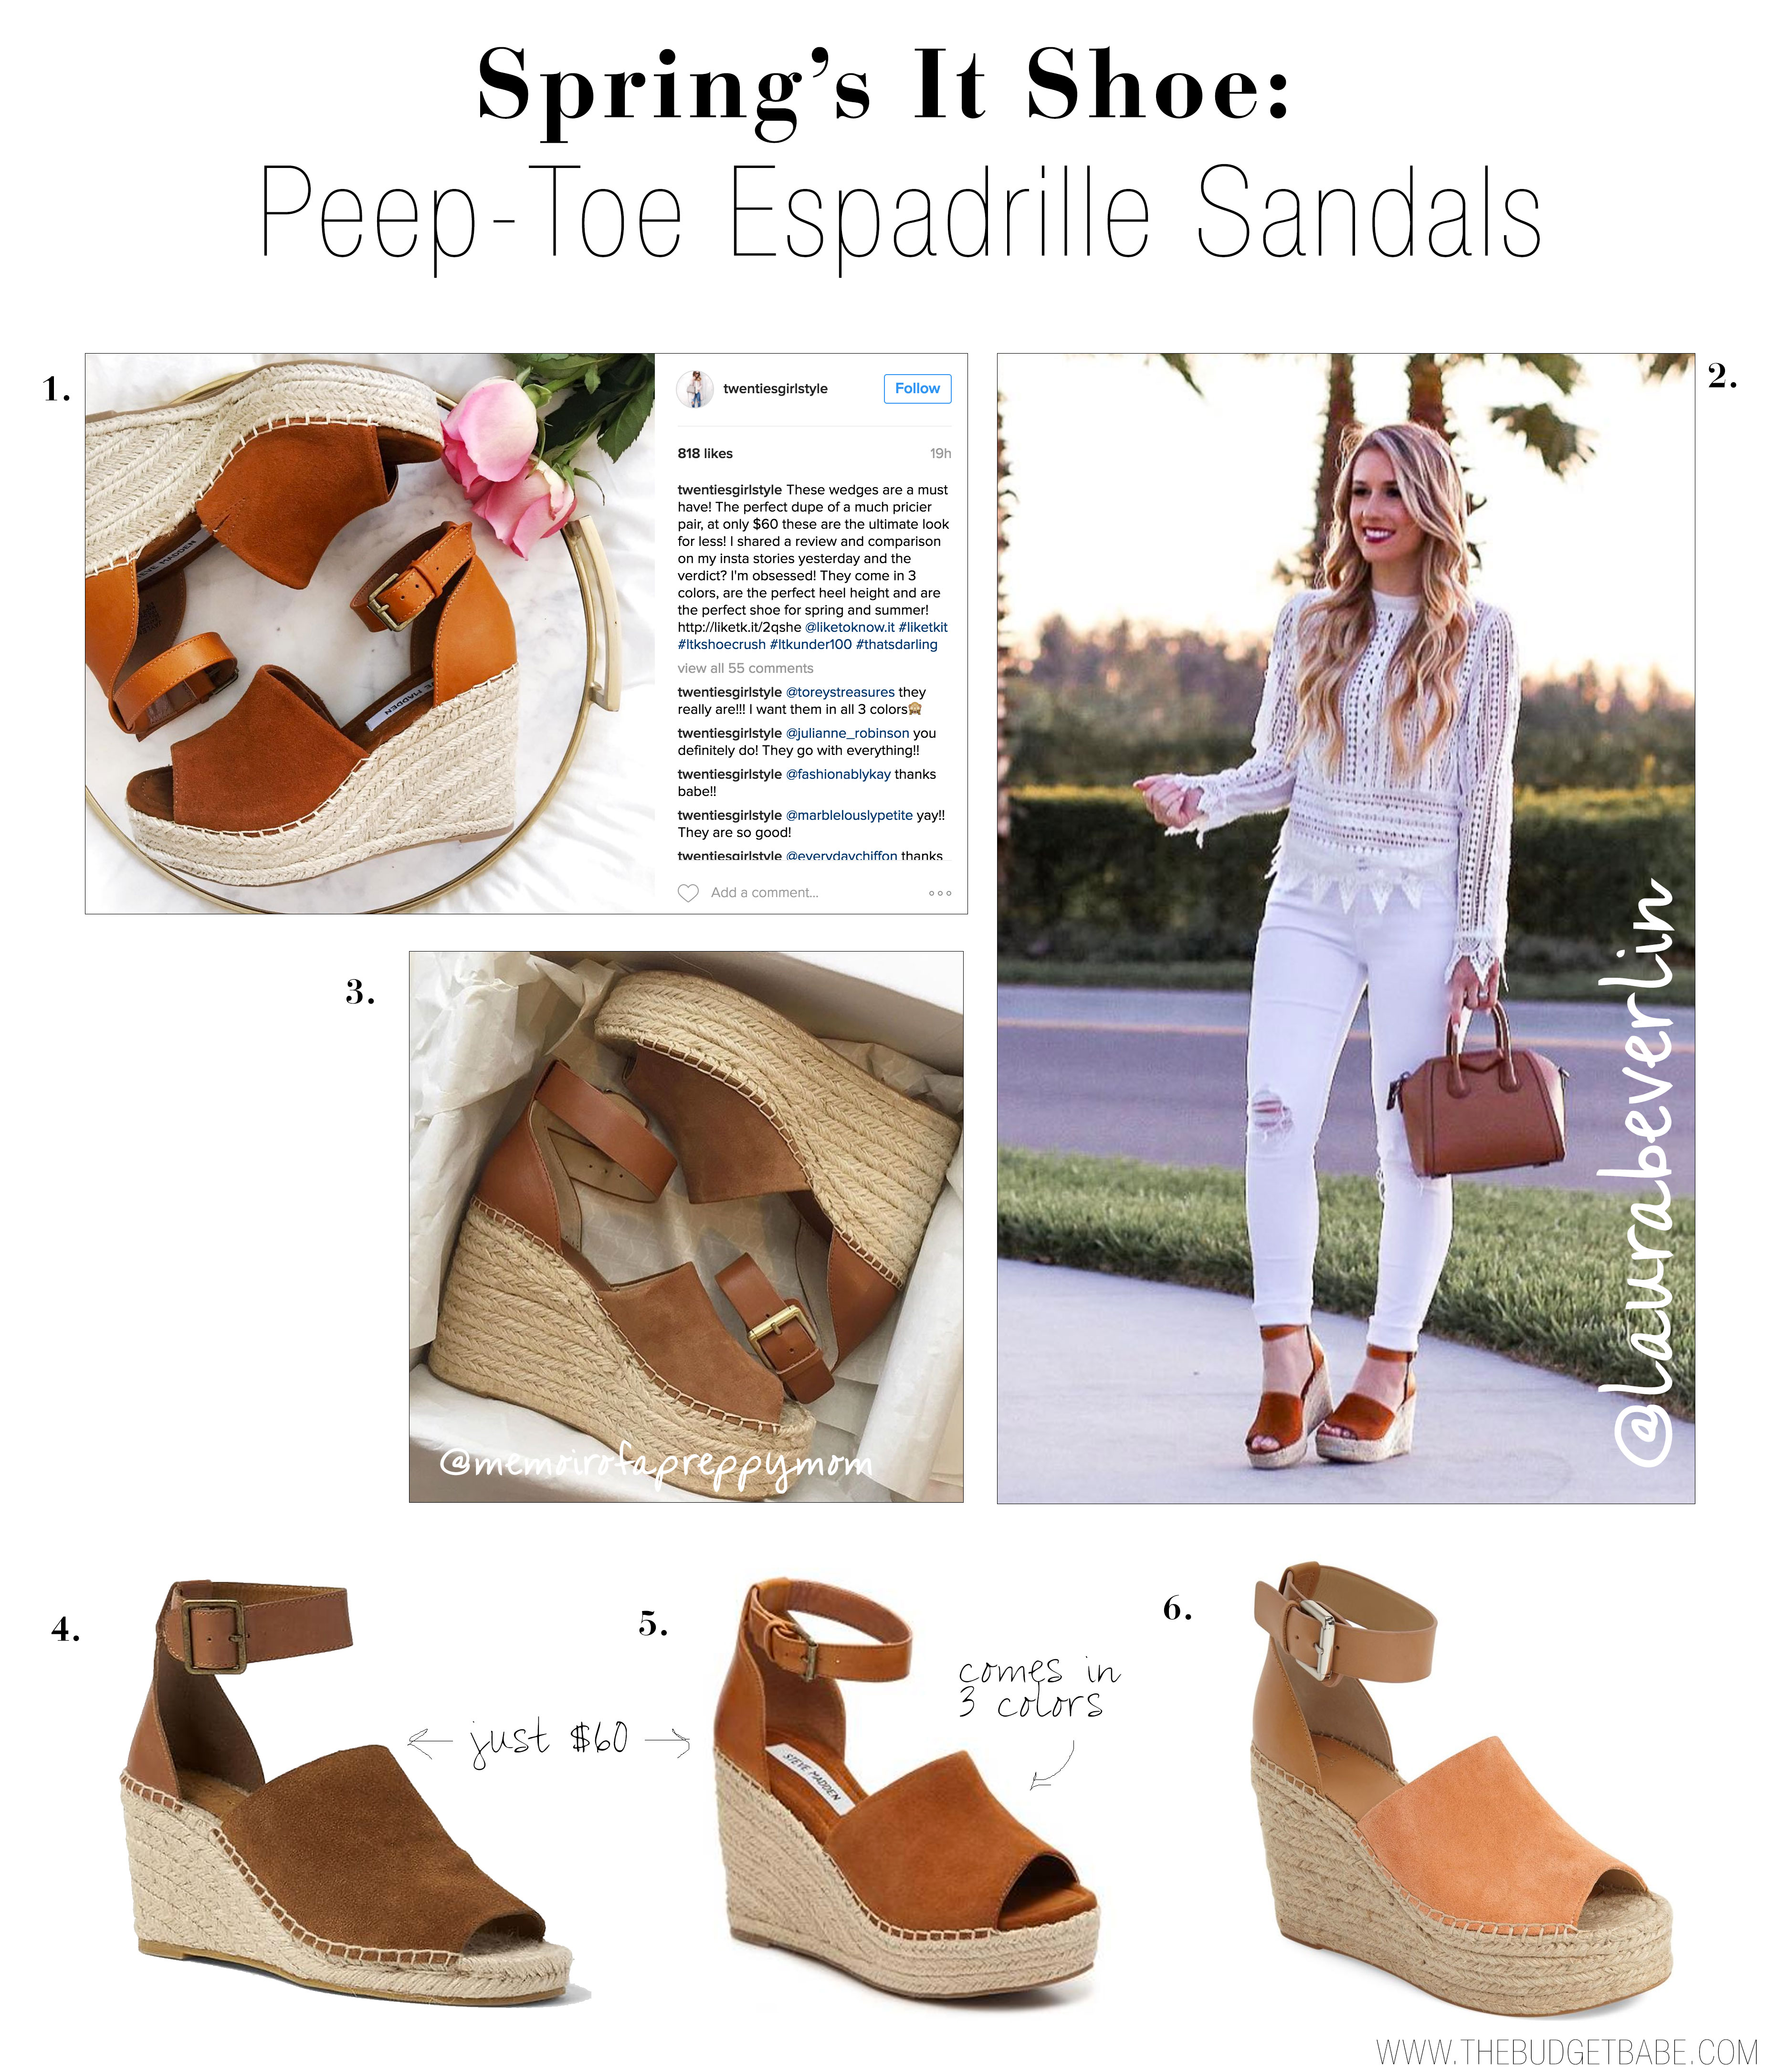 "Spring's It Shoe: Peep Toe Espadrille Wedge"" alt=""Spring's it shoe looks like it's going to be a peep-toe espadrille sandal with a chic and functional ankle strap."